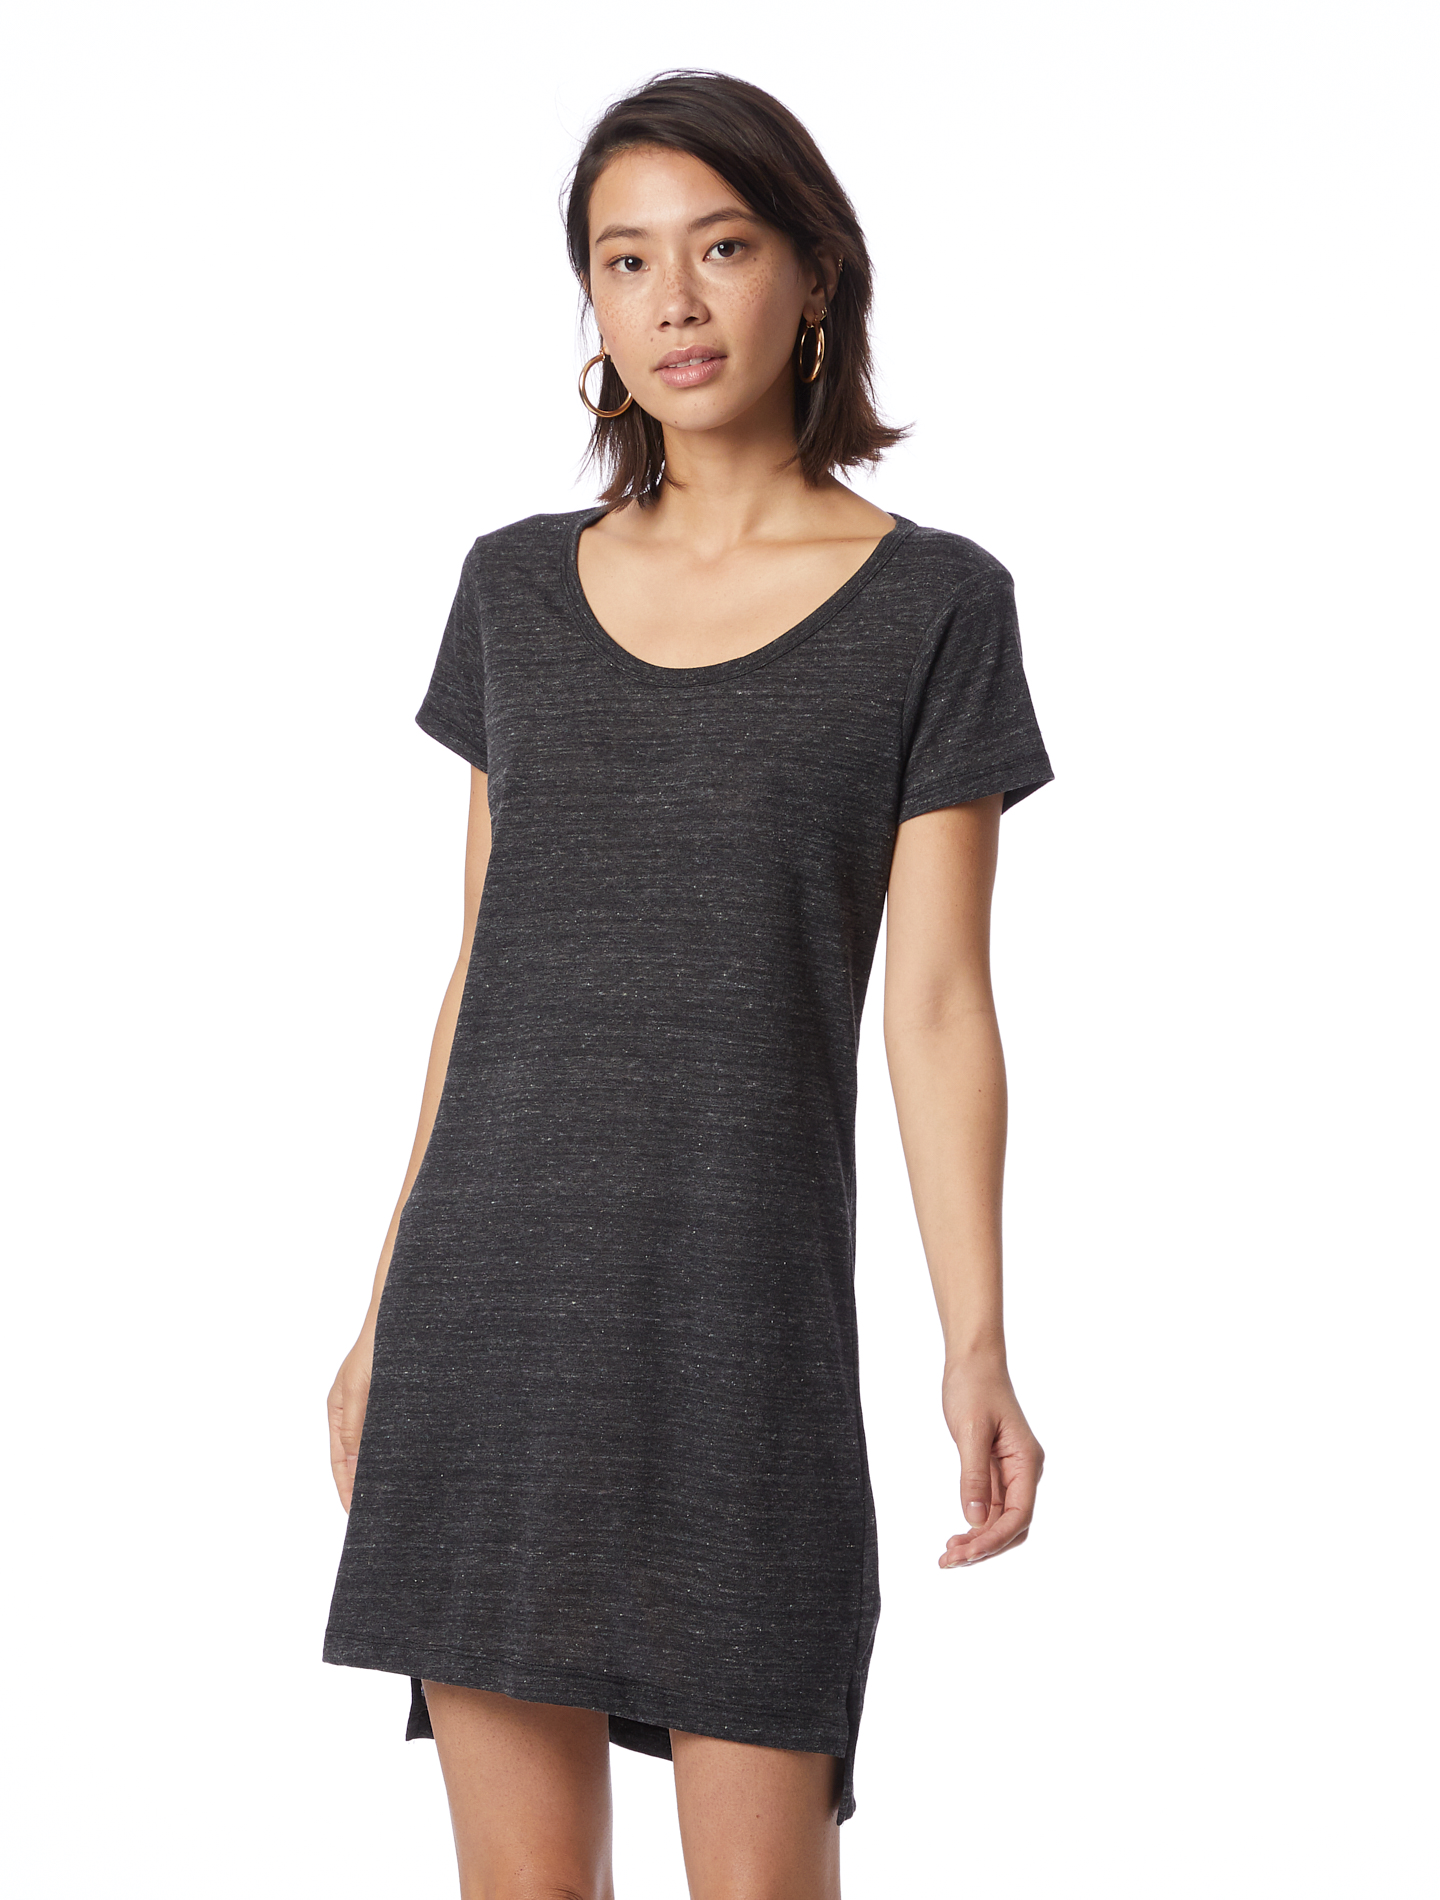 Made in U.S.A Eco-Jersey T-Shirt Dress